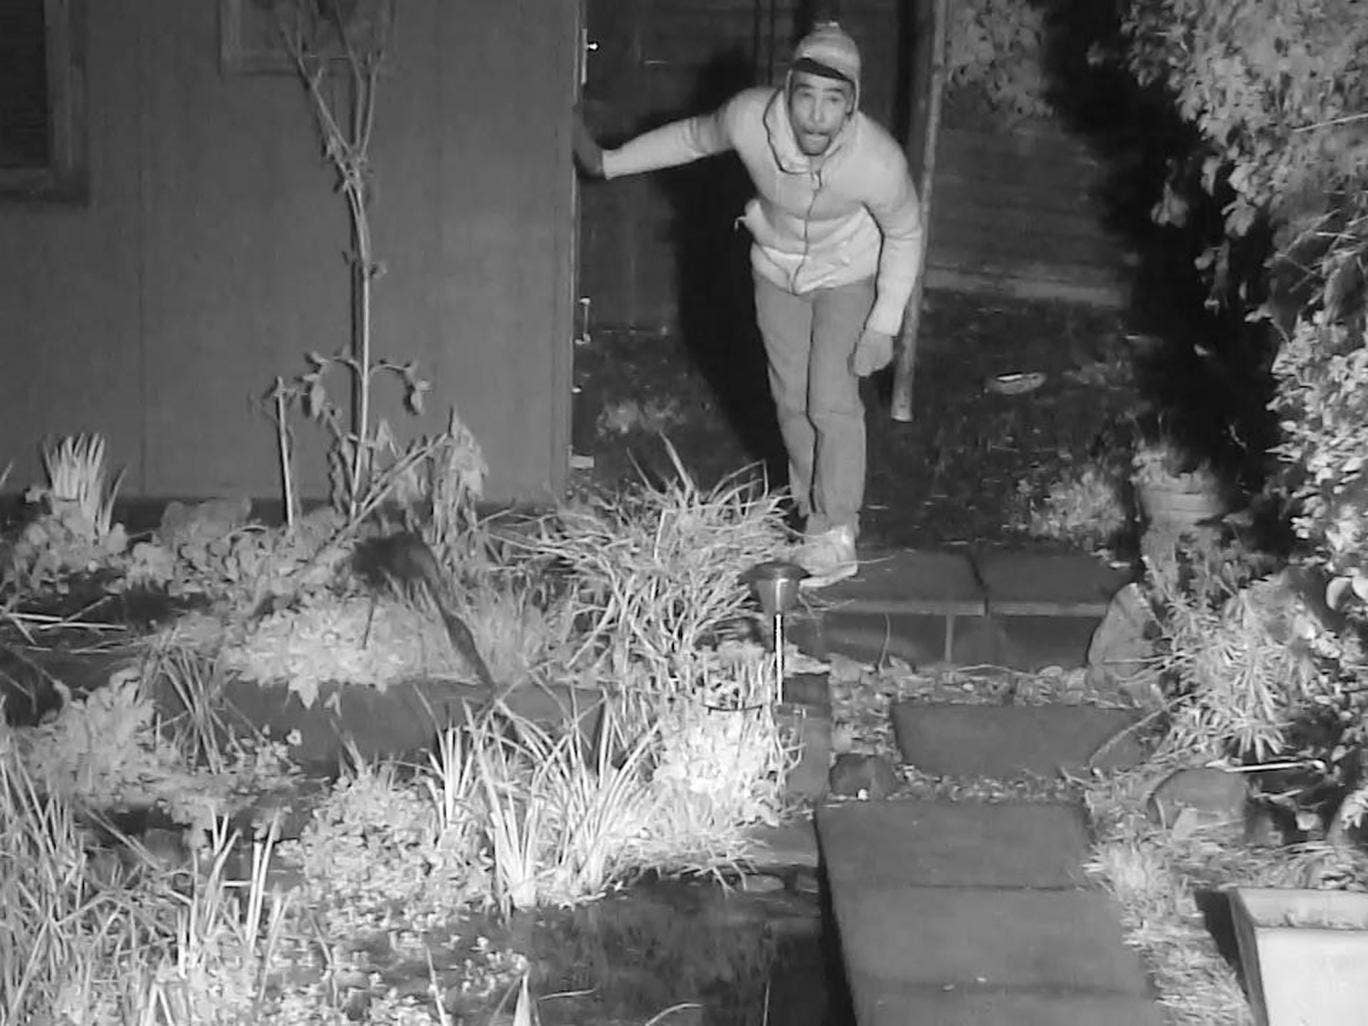 Police released this image, captured by Simon King's 'Fox Family Cam', and said they would like to speak to man in connection with a burglary investigation